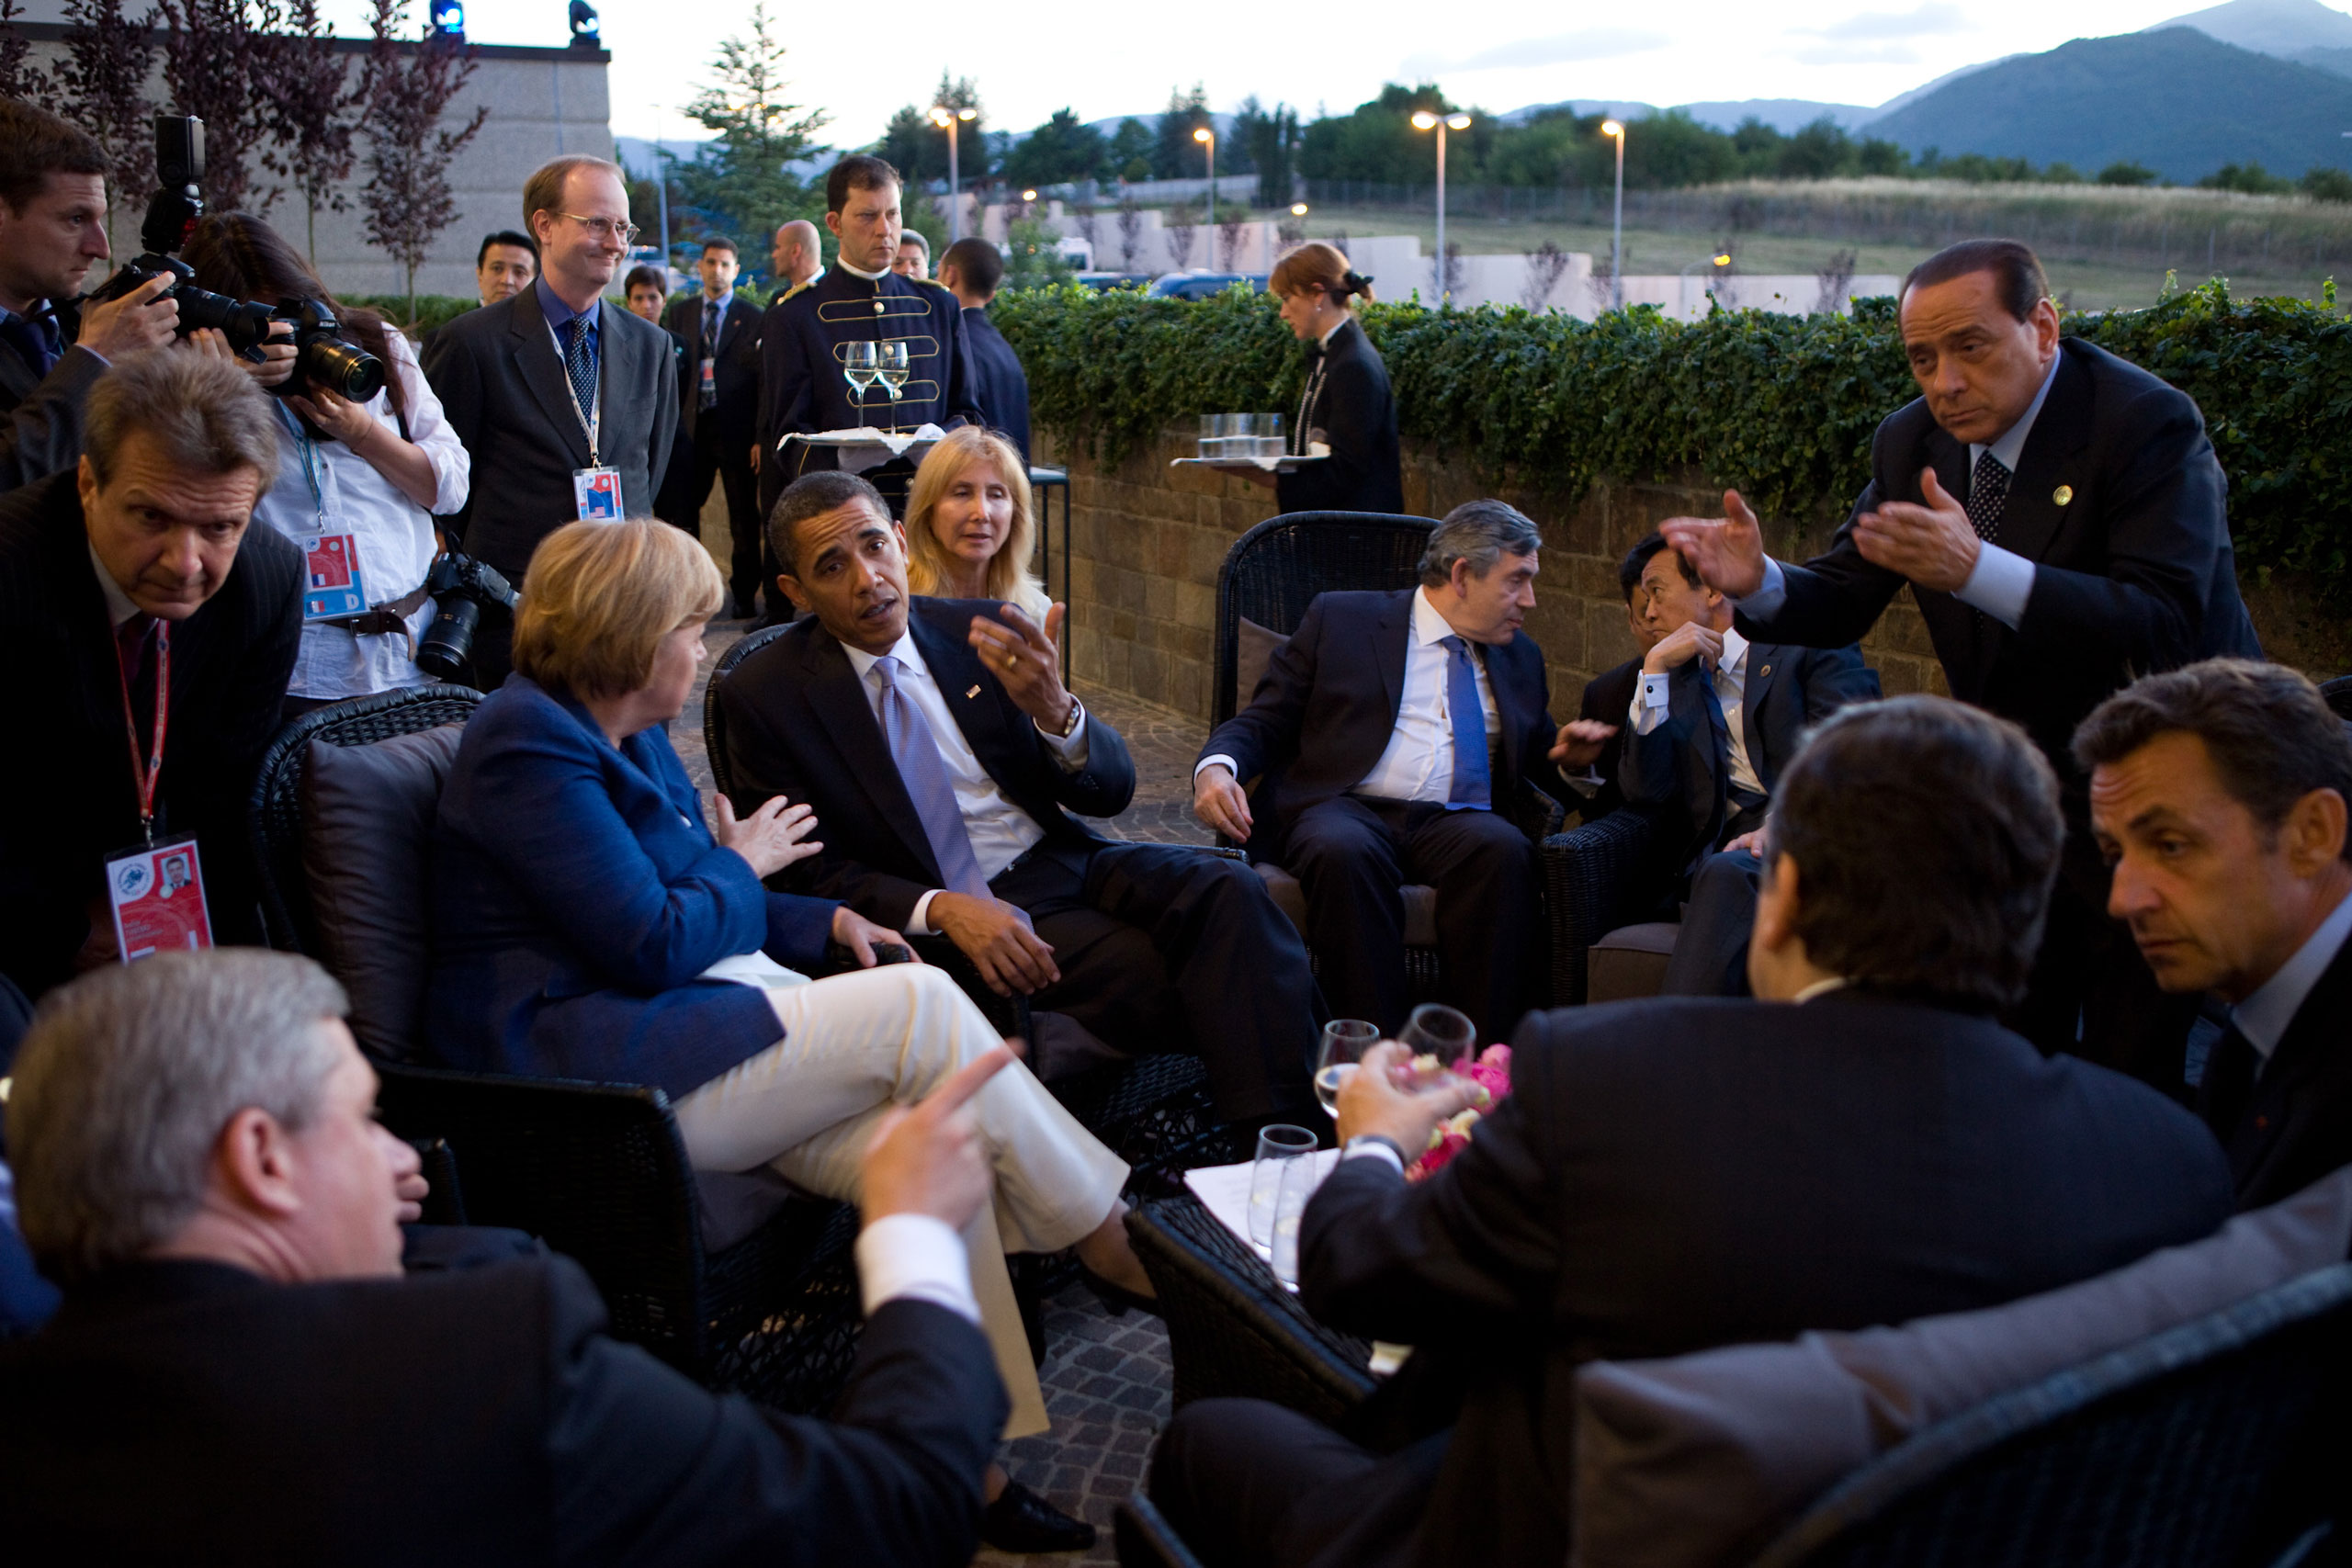 """""""This was a great scene just before dinner at the G-8 Summit in L'Aquila, Italy. As the leaders arrived, they spontaneously moved to a small patio outside. Several different conversations were taking place. Finally as dusk settled in, Italian Prime Minister Silvio Berlusconi, at far right, motioned for everyone to move inside for the dinner,""""July 8, 2009."""